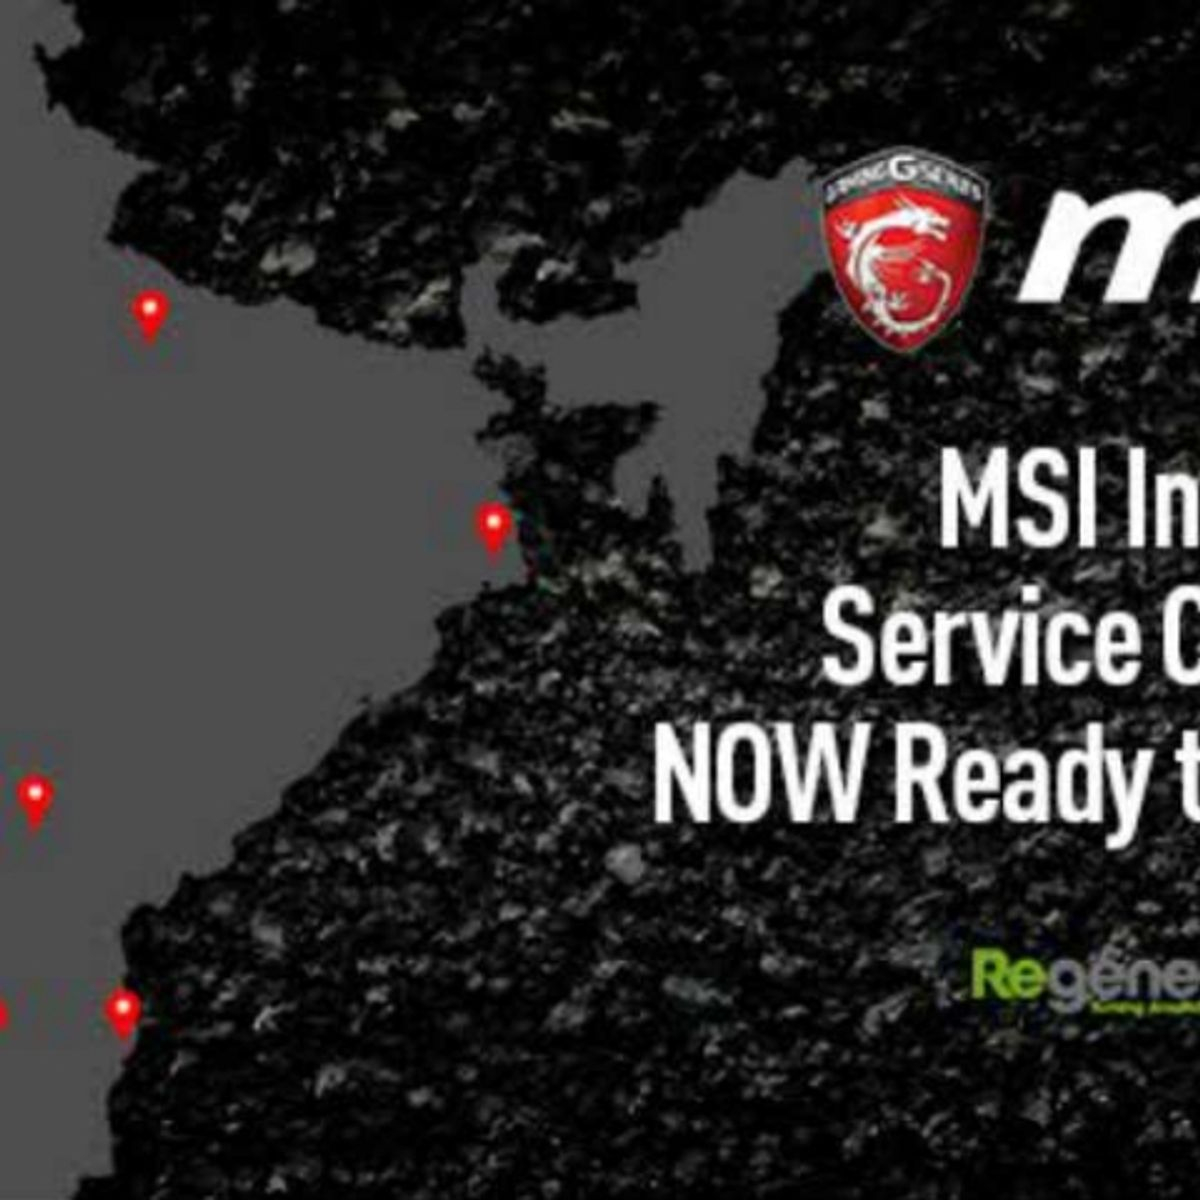 MSI adds 11 more service centers across 10 cities in India